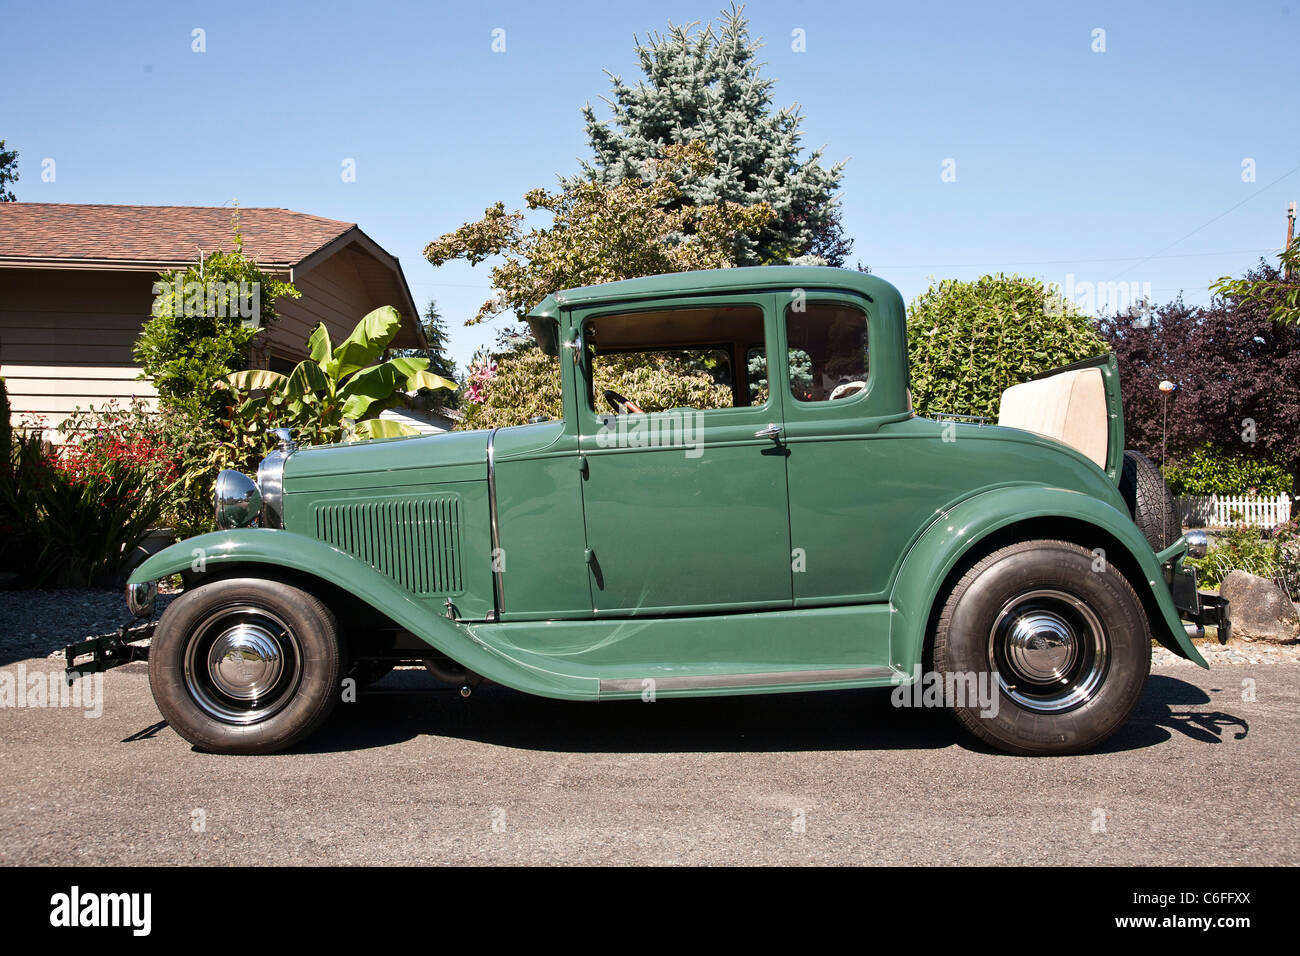 restored classic 1930 green Model A Ford car with open rumble seat parked in context of suburban driveway Edmonds Stock Photo